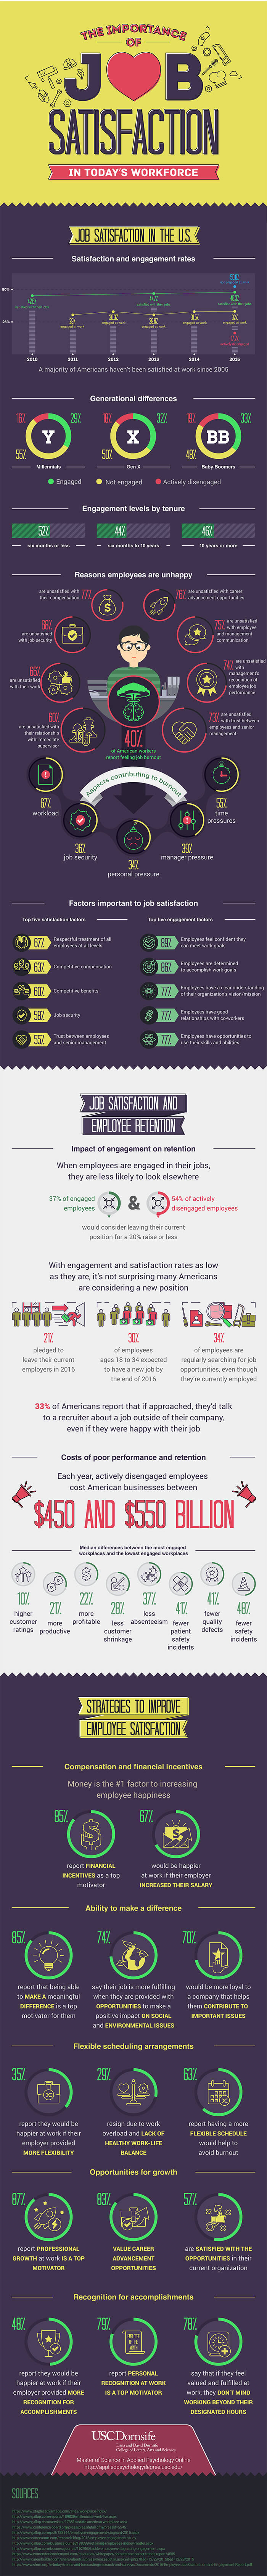 employee satisfaction in business infographic